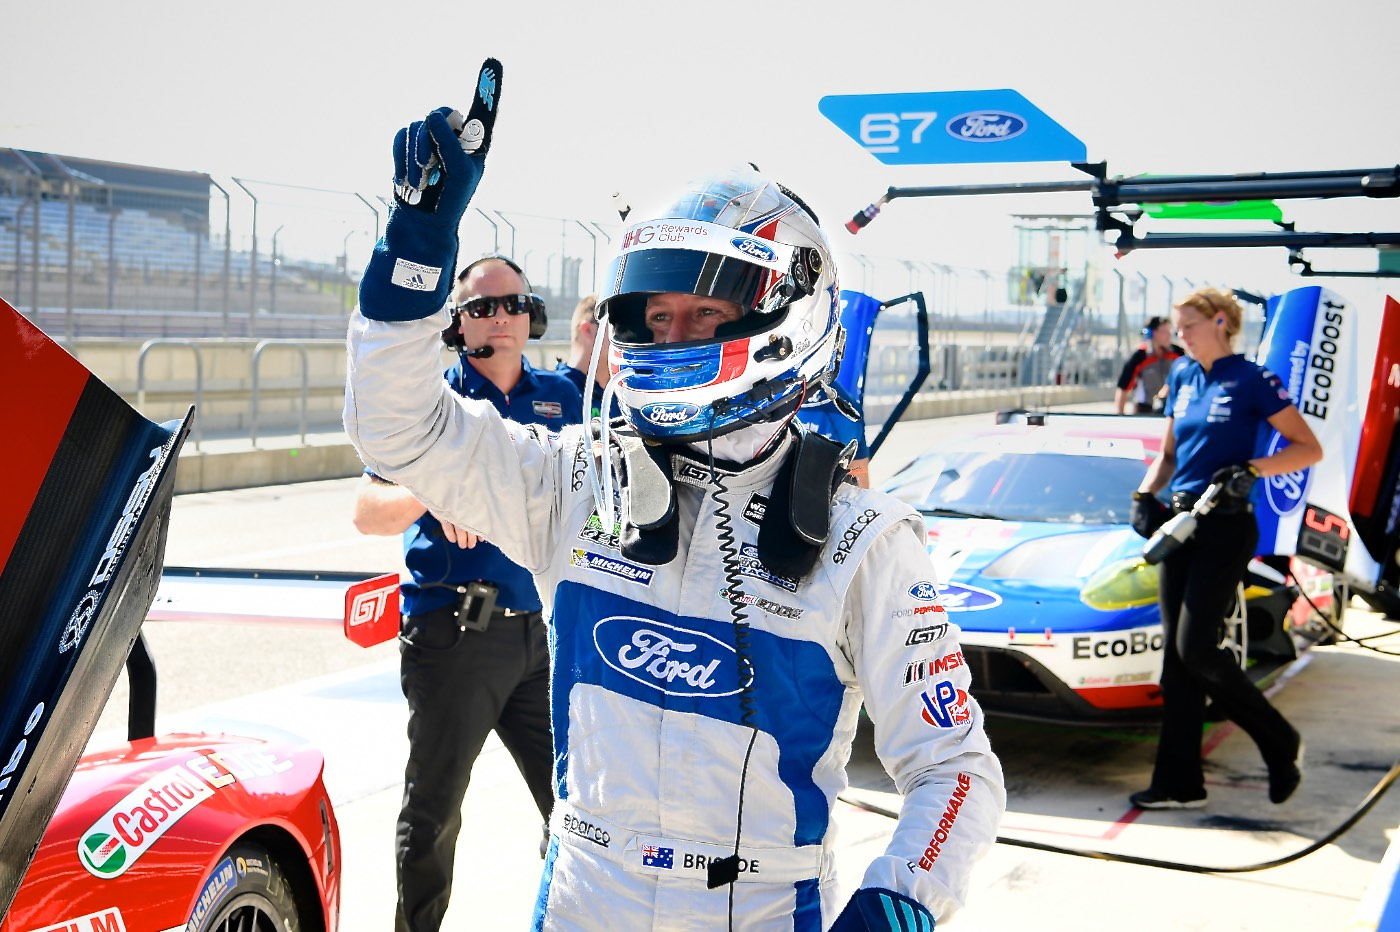 Briscoe puts Ford on pole in Texas